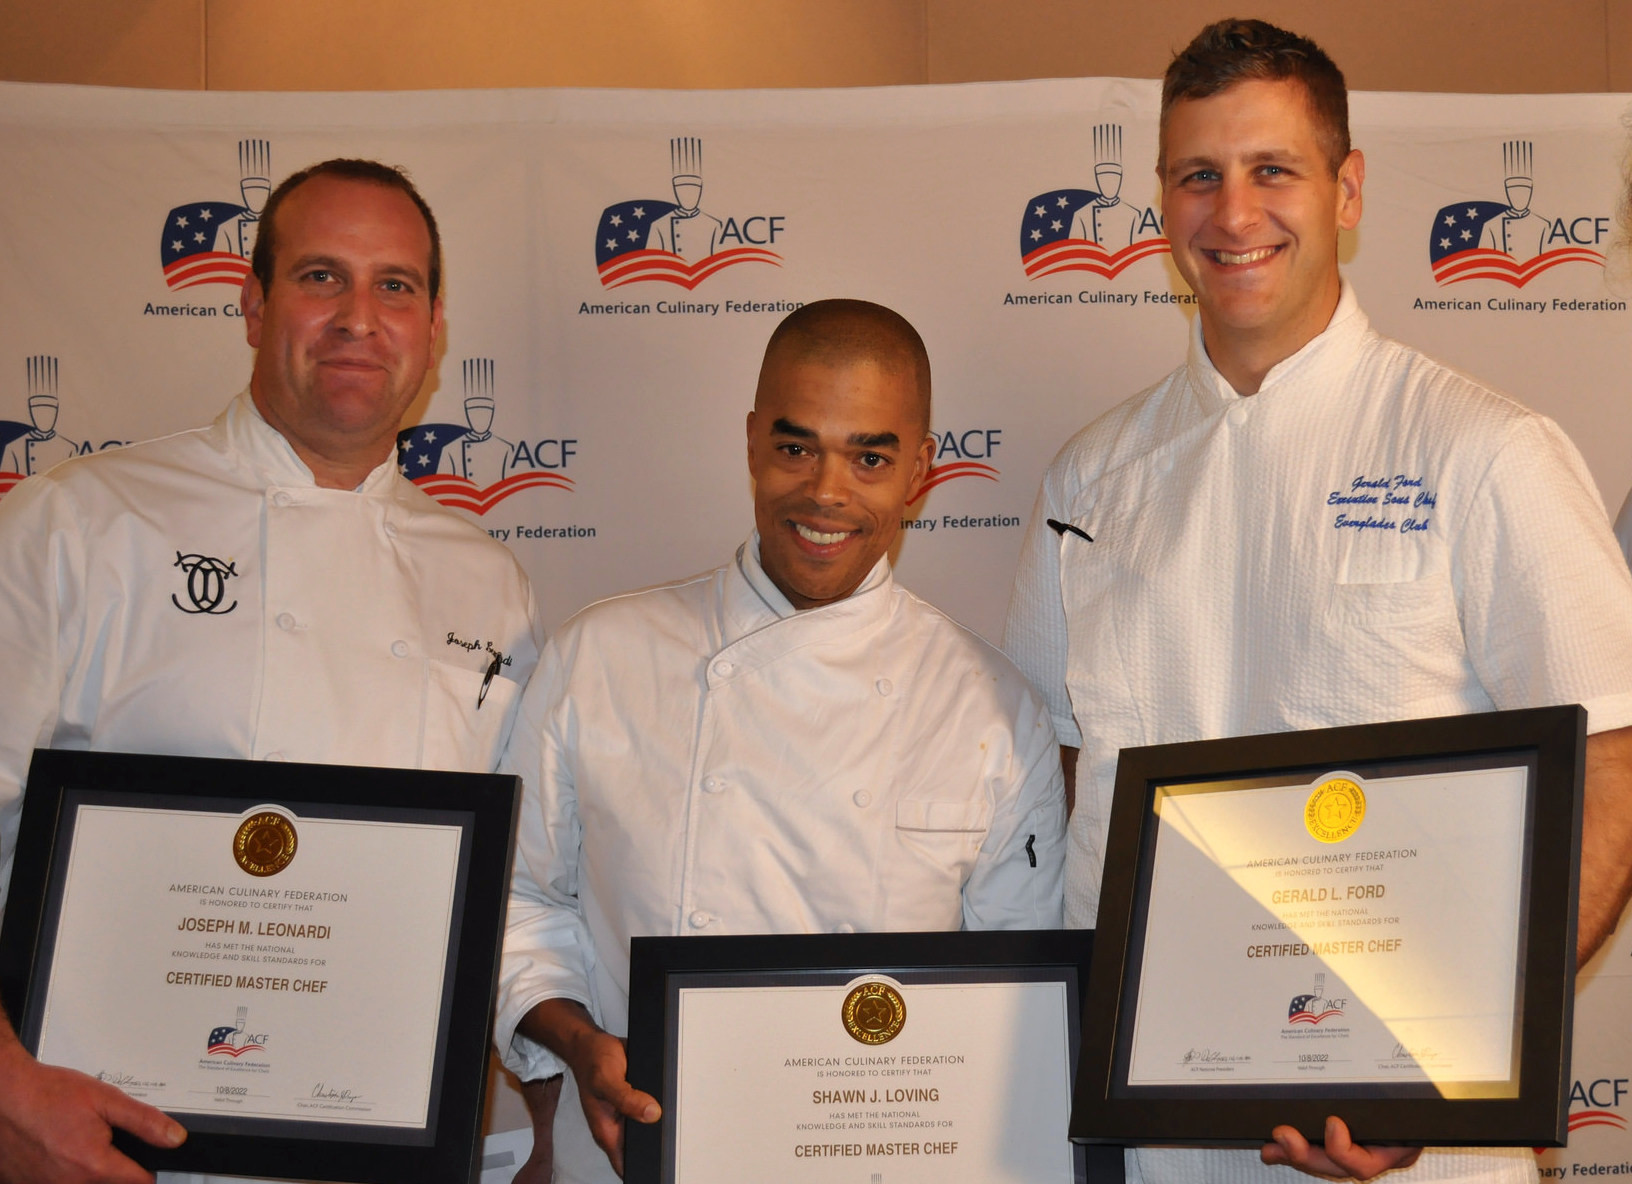 American Culinary Federation Announces Three Certified Master Chefs After Rigorous Eight Day Test Business Wire